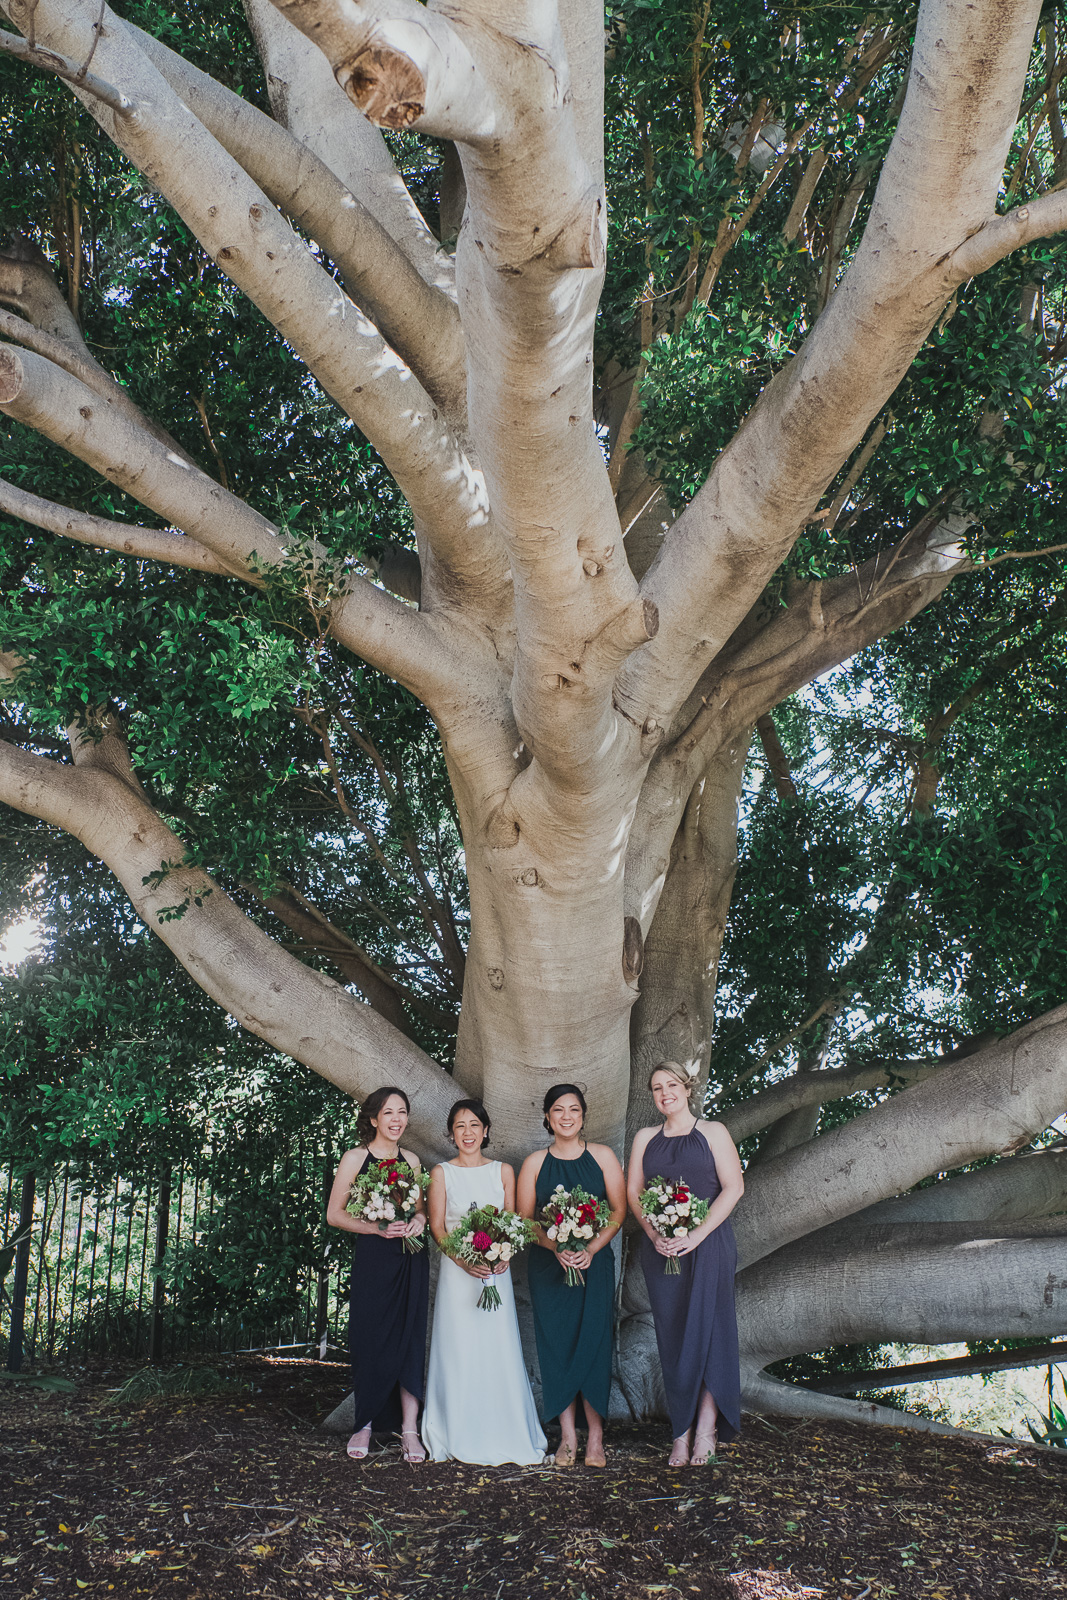 Pyrmont-park-bride-and-groom-portraits (12).jpg